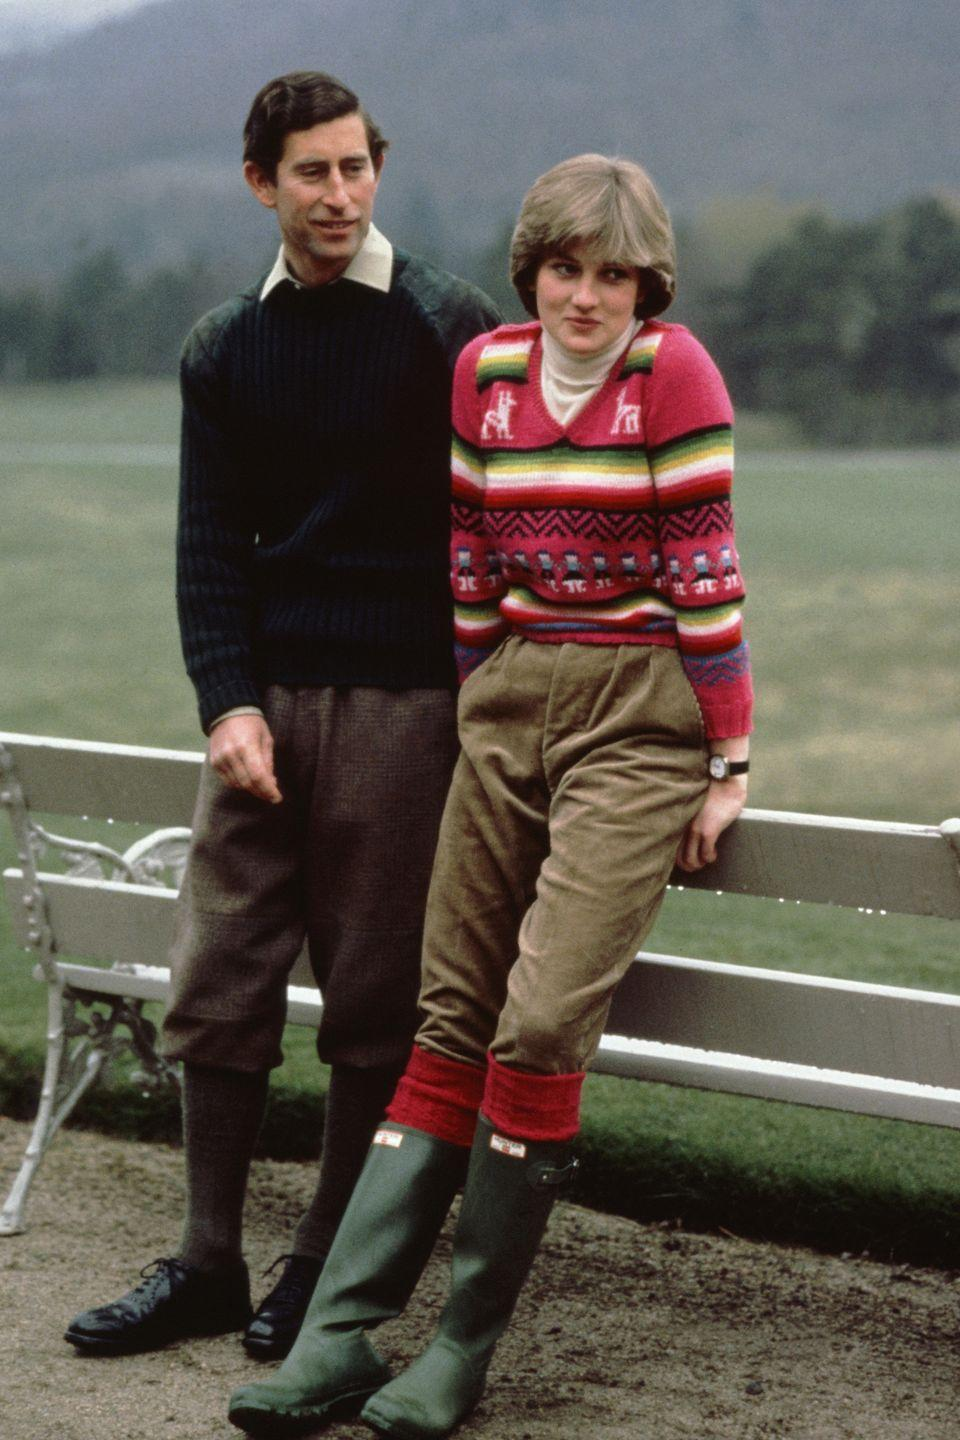 """<p>With a wedding set for July, Lady Diana Spencer kicked back in rubber boots and a casual sweater while at the Scottish royal residence <a href=""""https://www.goodhousekeeping.com/life/news/a44424/queen-william-harry-diana-death/"""" rel=""""nofollow noopener"""" target=""""_blank"""" data-ylk=""""slk:Balmoral"""" class=""""link rapid-noclick-resp"""">Balmoral</a>.</p>"""